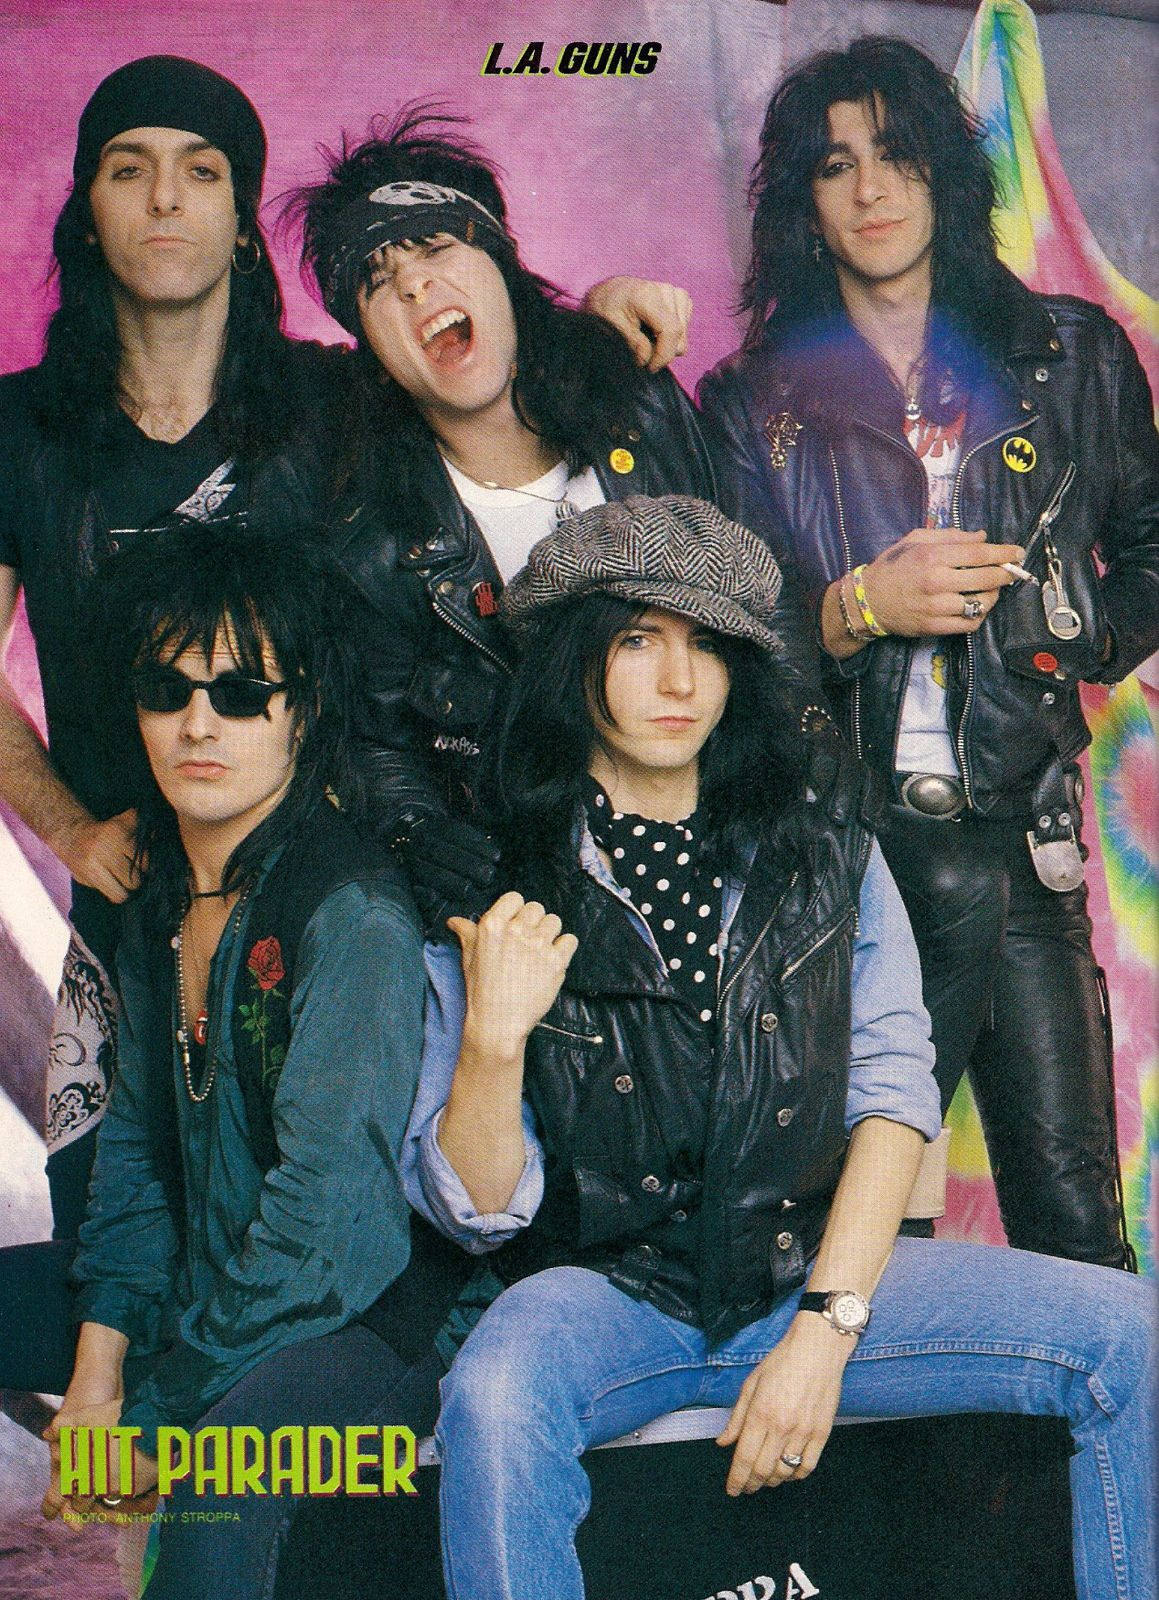 Tracii Guns, L.A. Guns - credit: Hit Parader